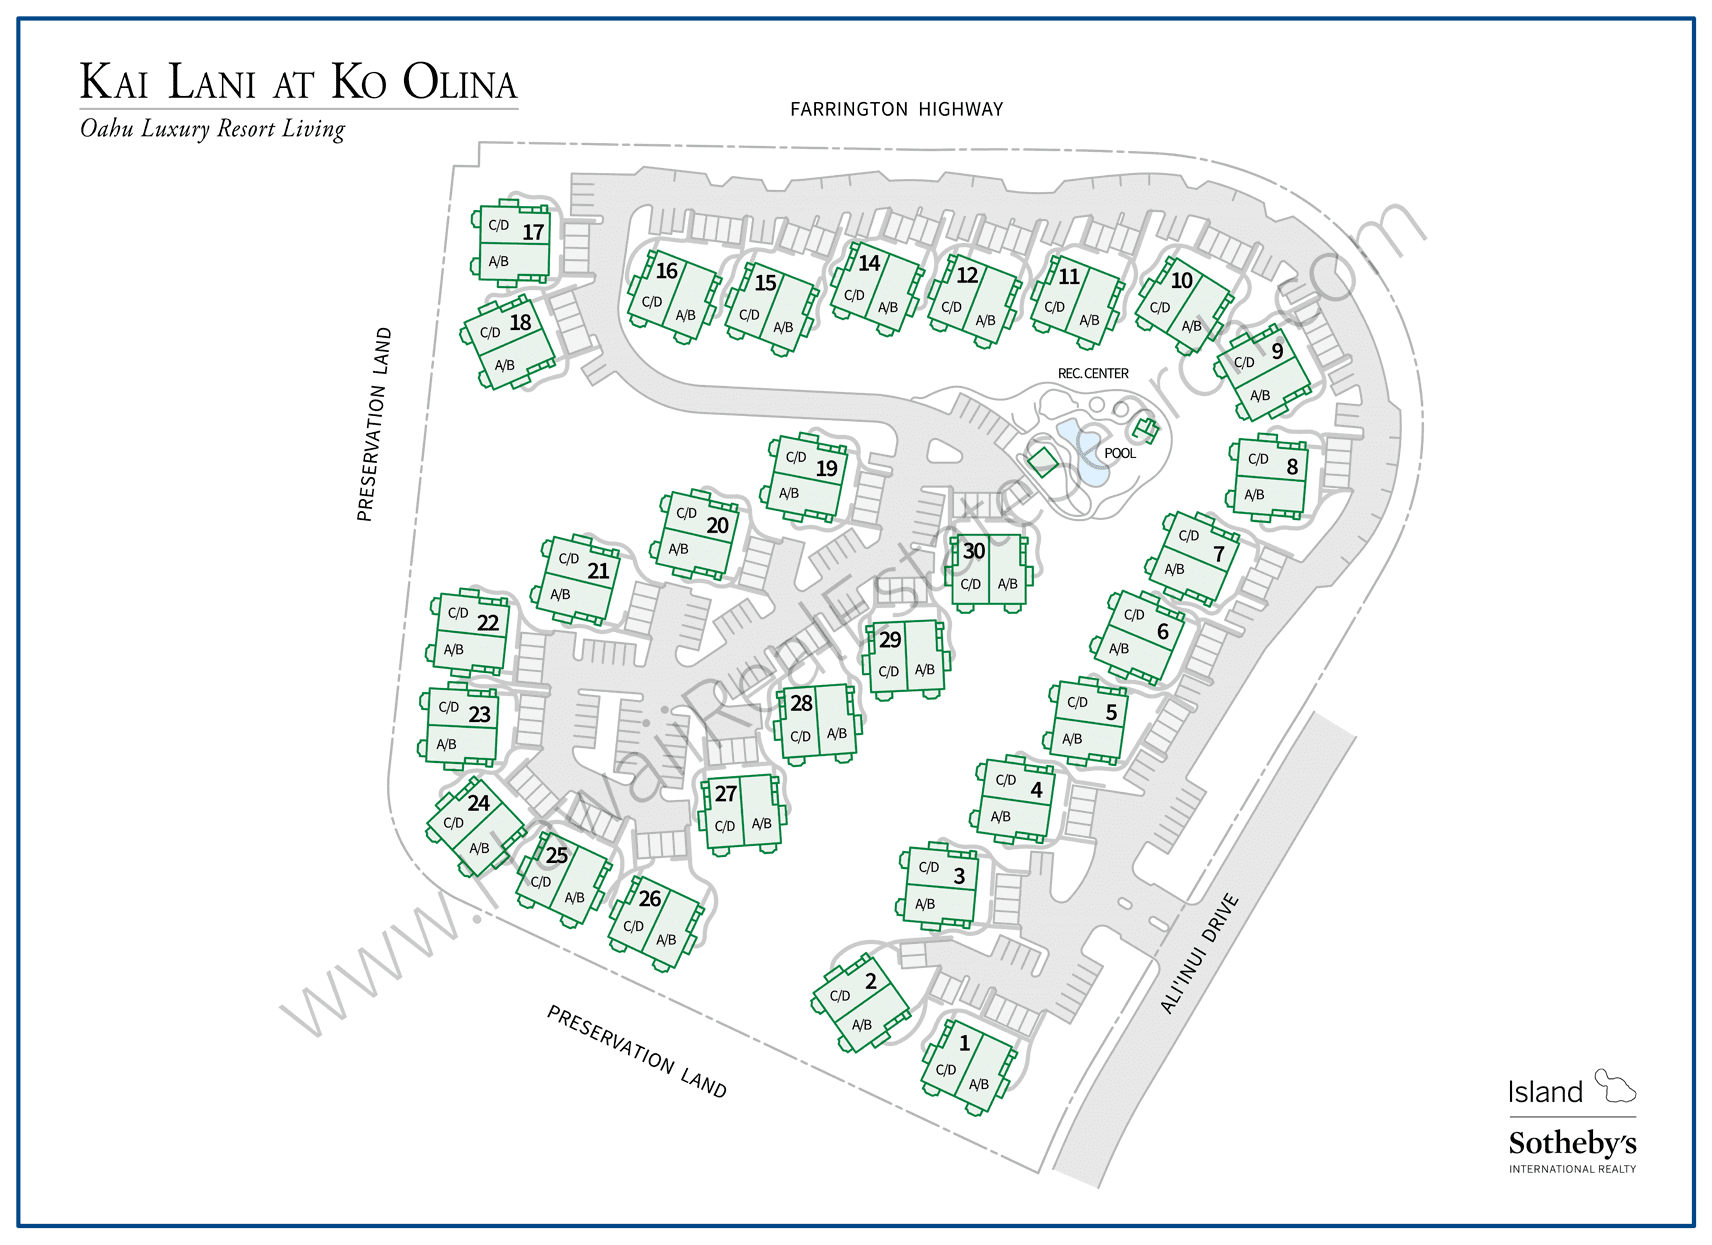 Kai Lani at Ko Olina Property Map